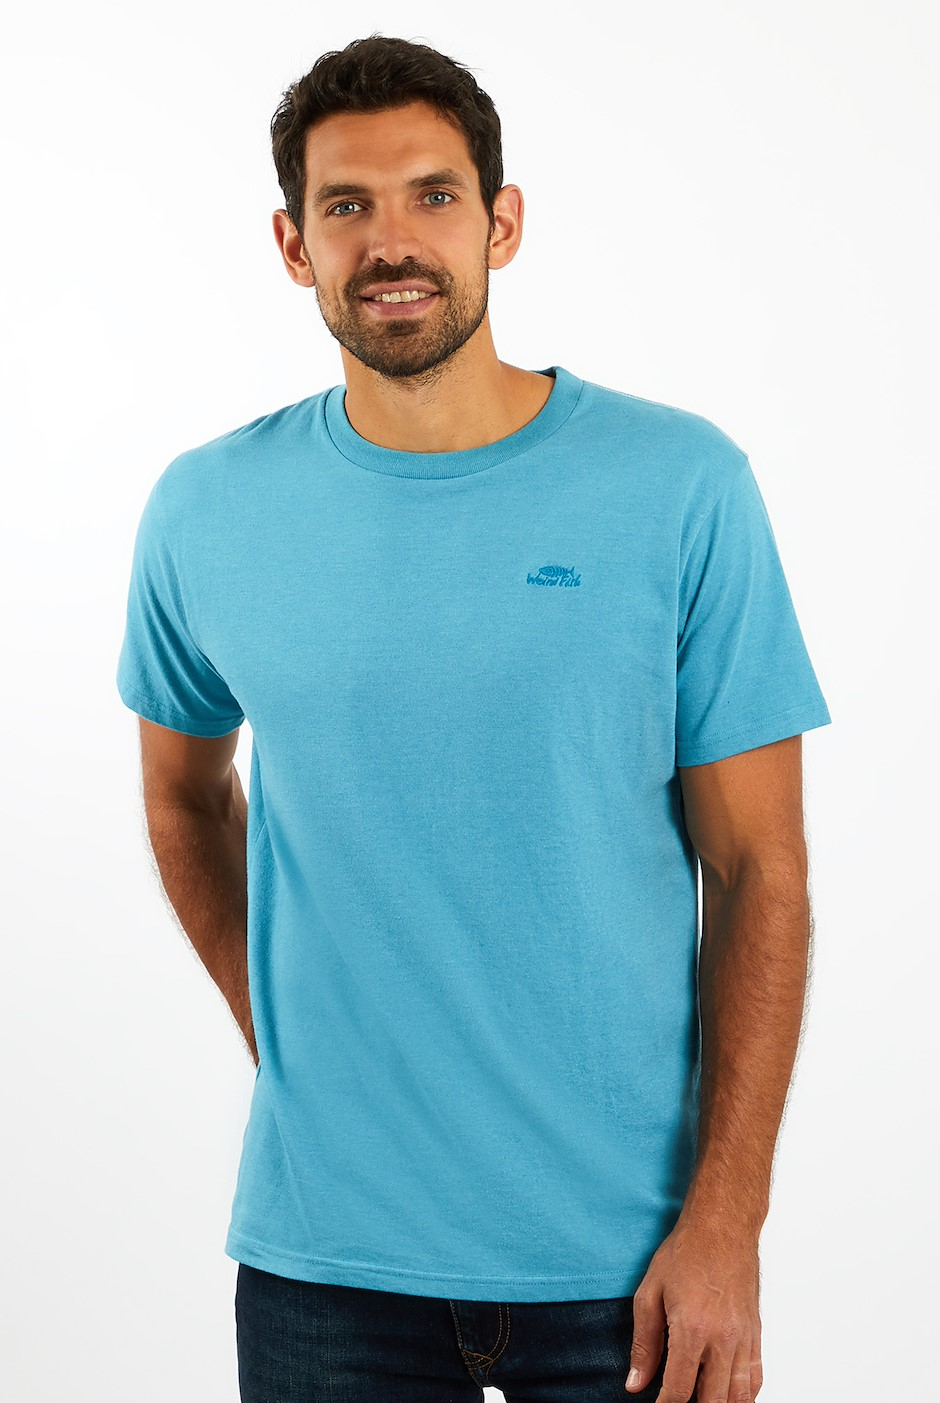 Fished T-Shirt Provincial Blue